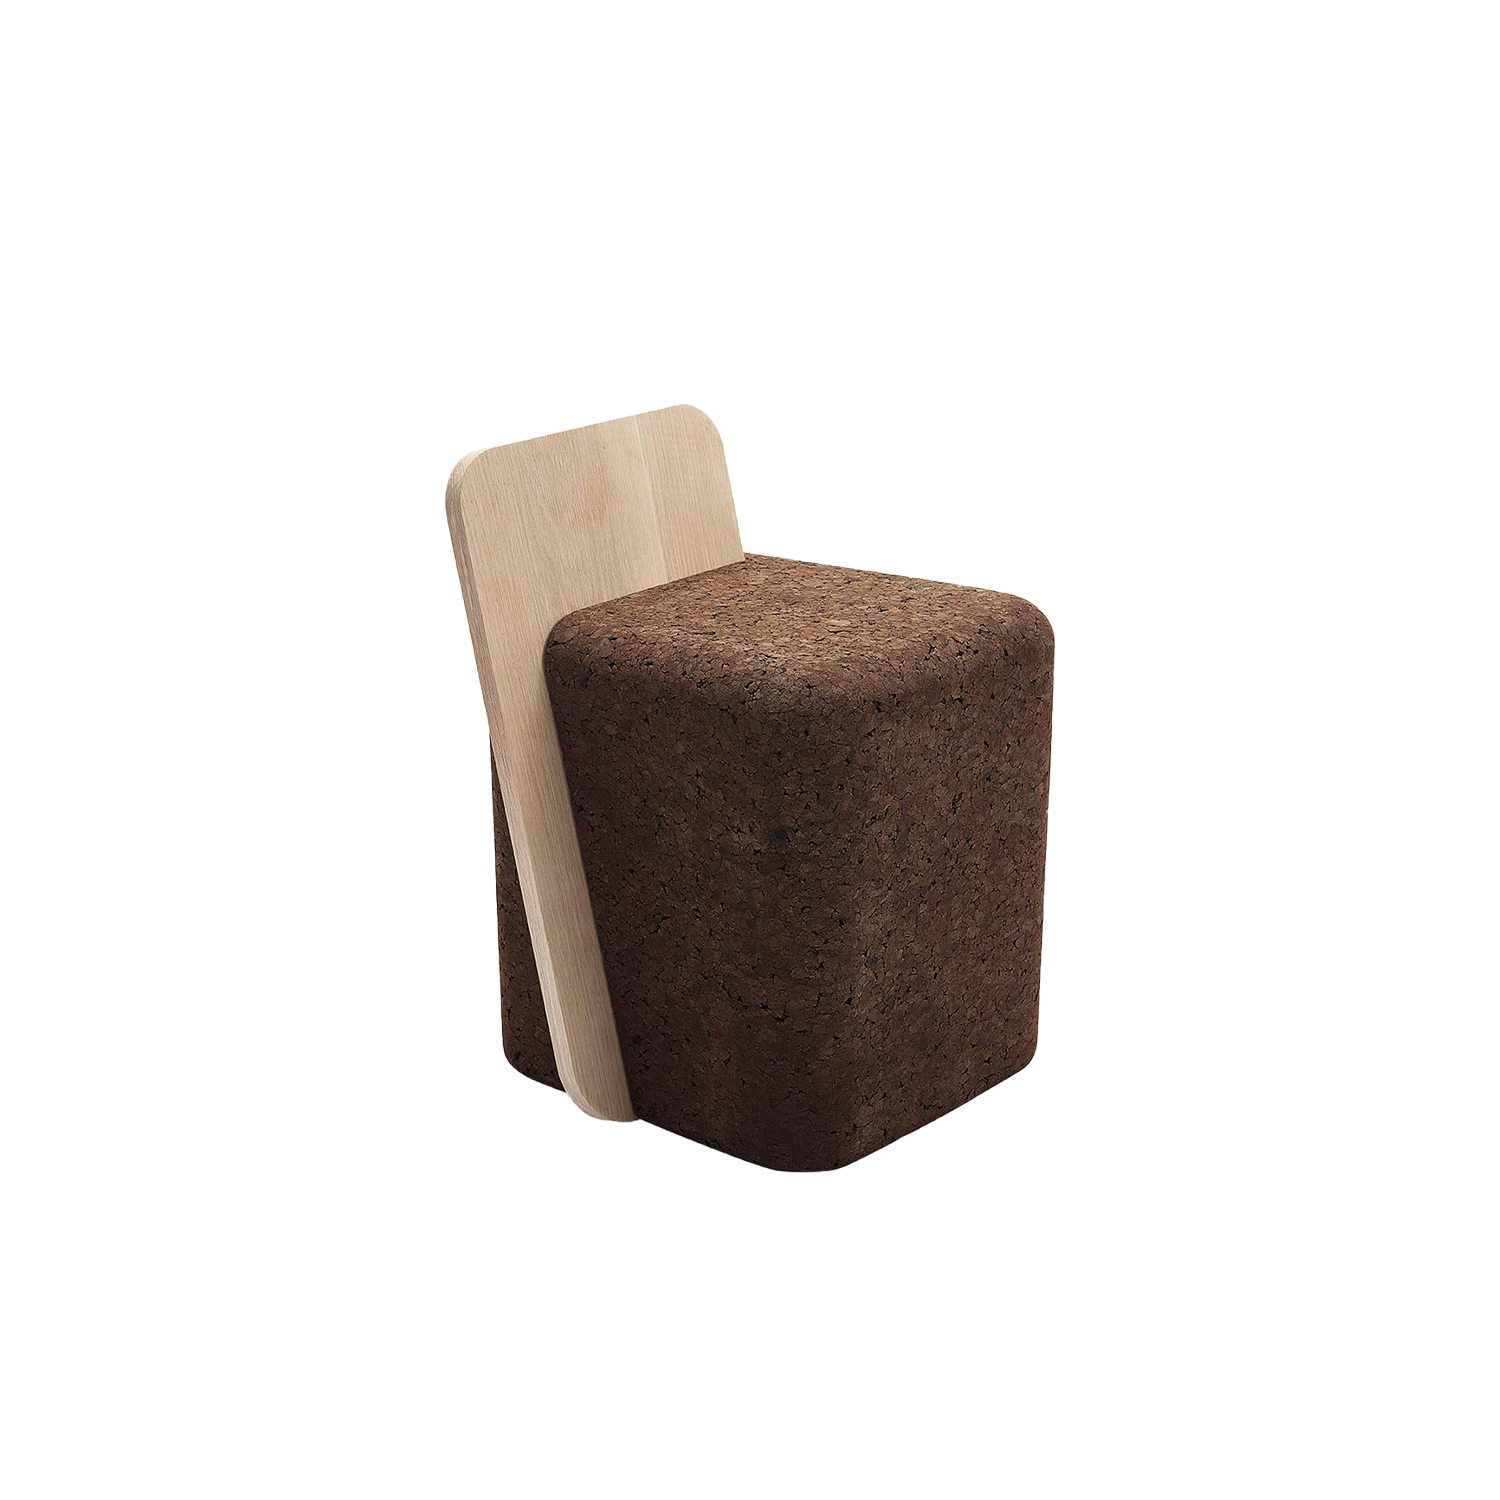 """Cut Stool - It is only used cork of the branches (falca) for the manufacture of cork granules. These are block clusters in autoclave, being 100% natural process, without use of additives. Technology, developed by Sofalca, consists of injecting water vapour through the pallets that will expand and agglutinate with the resins of the cork itself. This """"cooking"""" gives also dark colour to the agglomerated cork, like chocolate. In the production of steam I used biomass, obtained on milling and cleaning the falca, what makes it truly ecological production and without waste, 95% energy self-sufficient. As a super-material, cork offers so many advantages, because in addition to its excellent thermic, acoustic insulation and anti vibration characteristic, it is also a CO2 sink playing a key-role in the environment. 